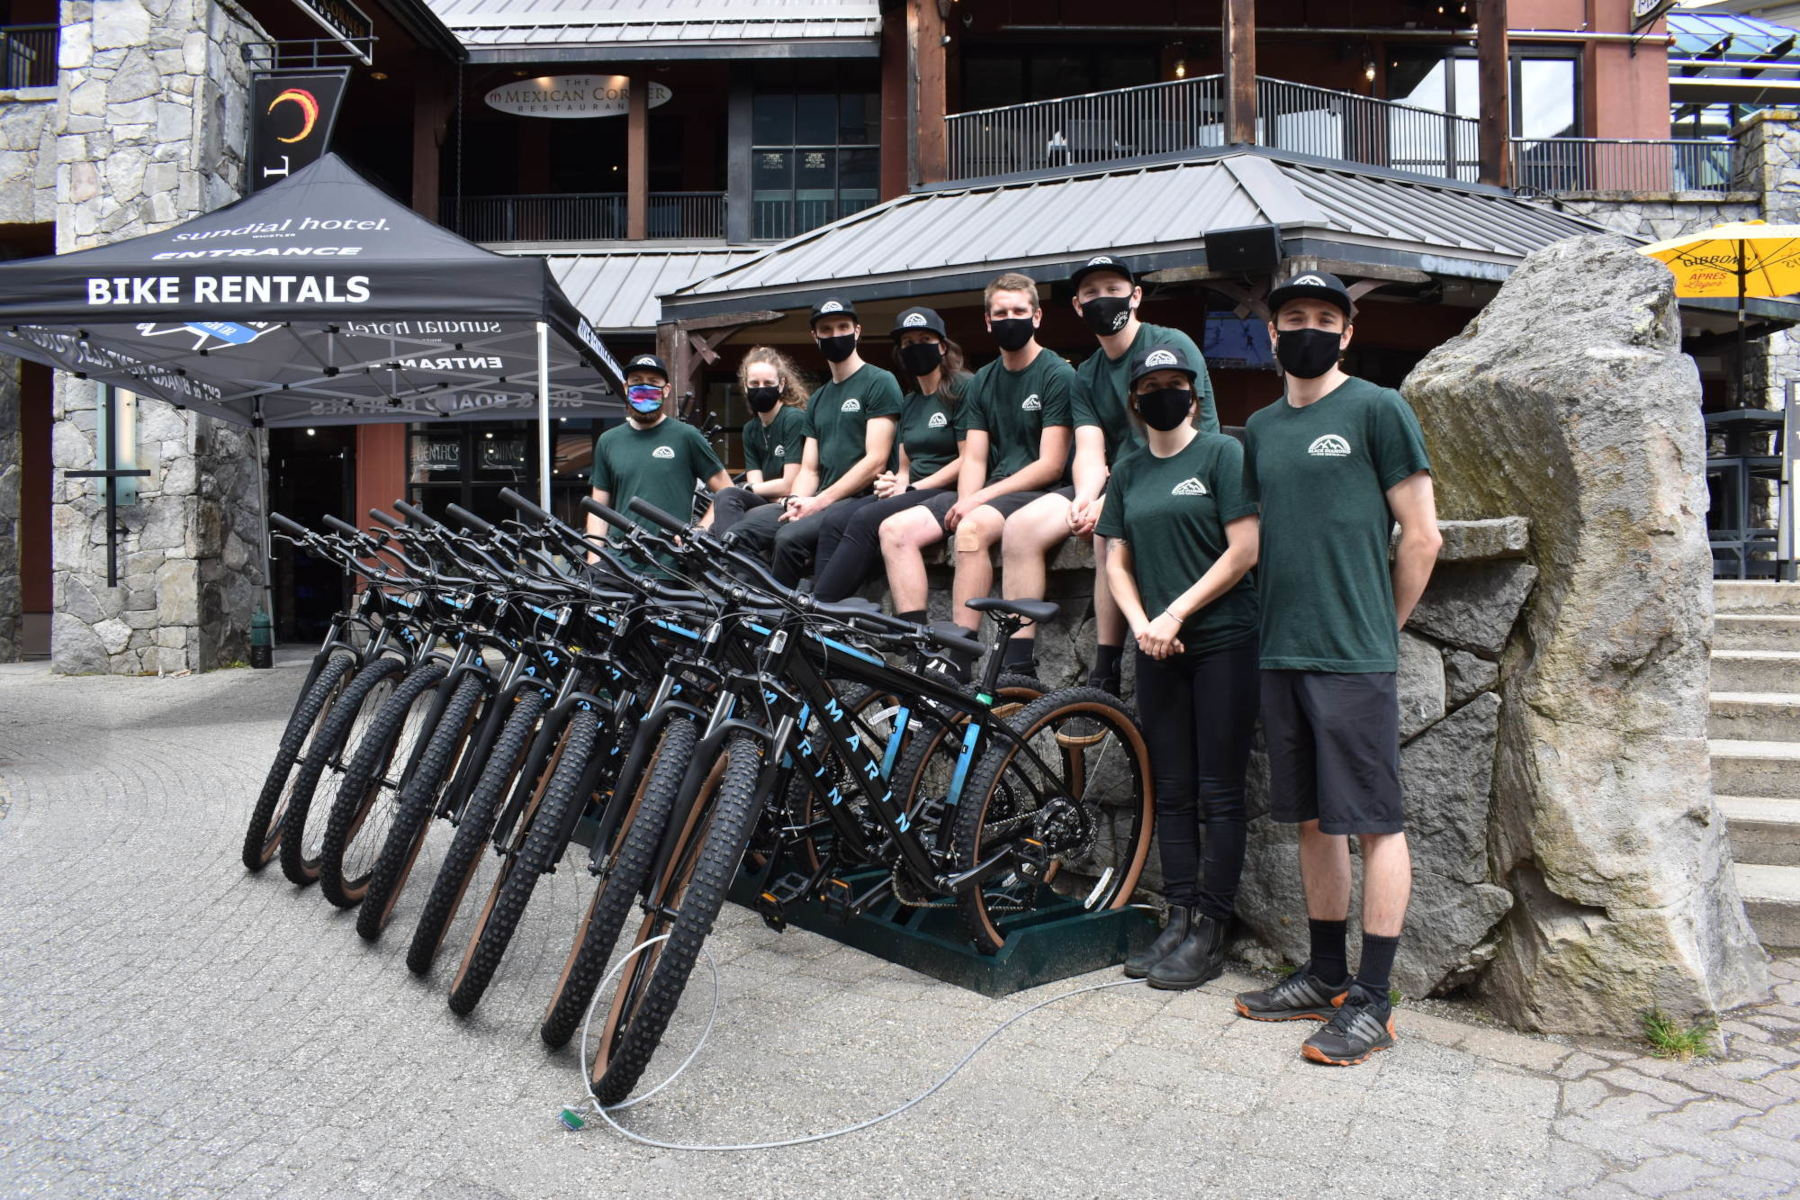 Staff sat on the wall next to bikes.